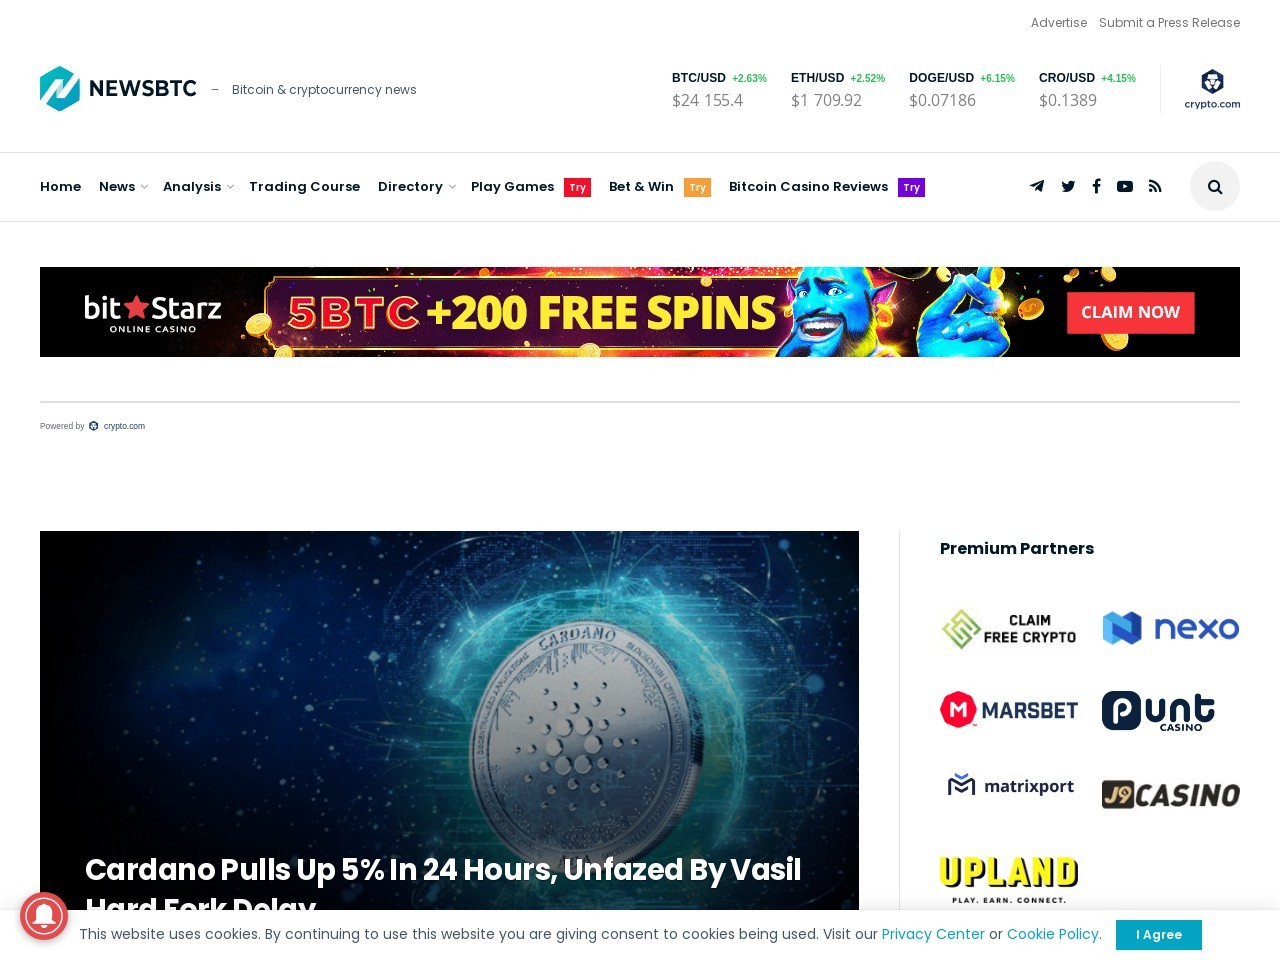 Bitcoin Flavour of the Week Again: Crypto Back in Mainstream Media